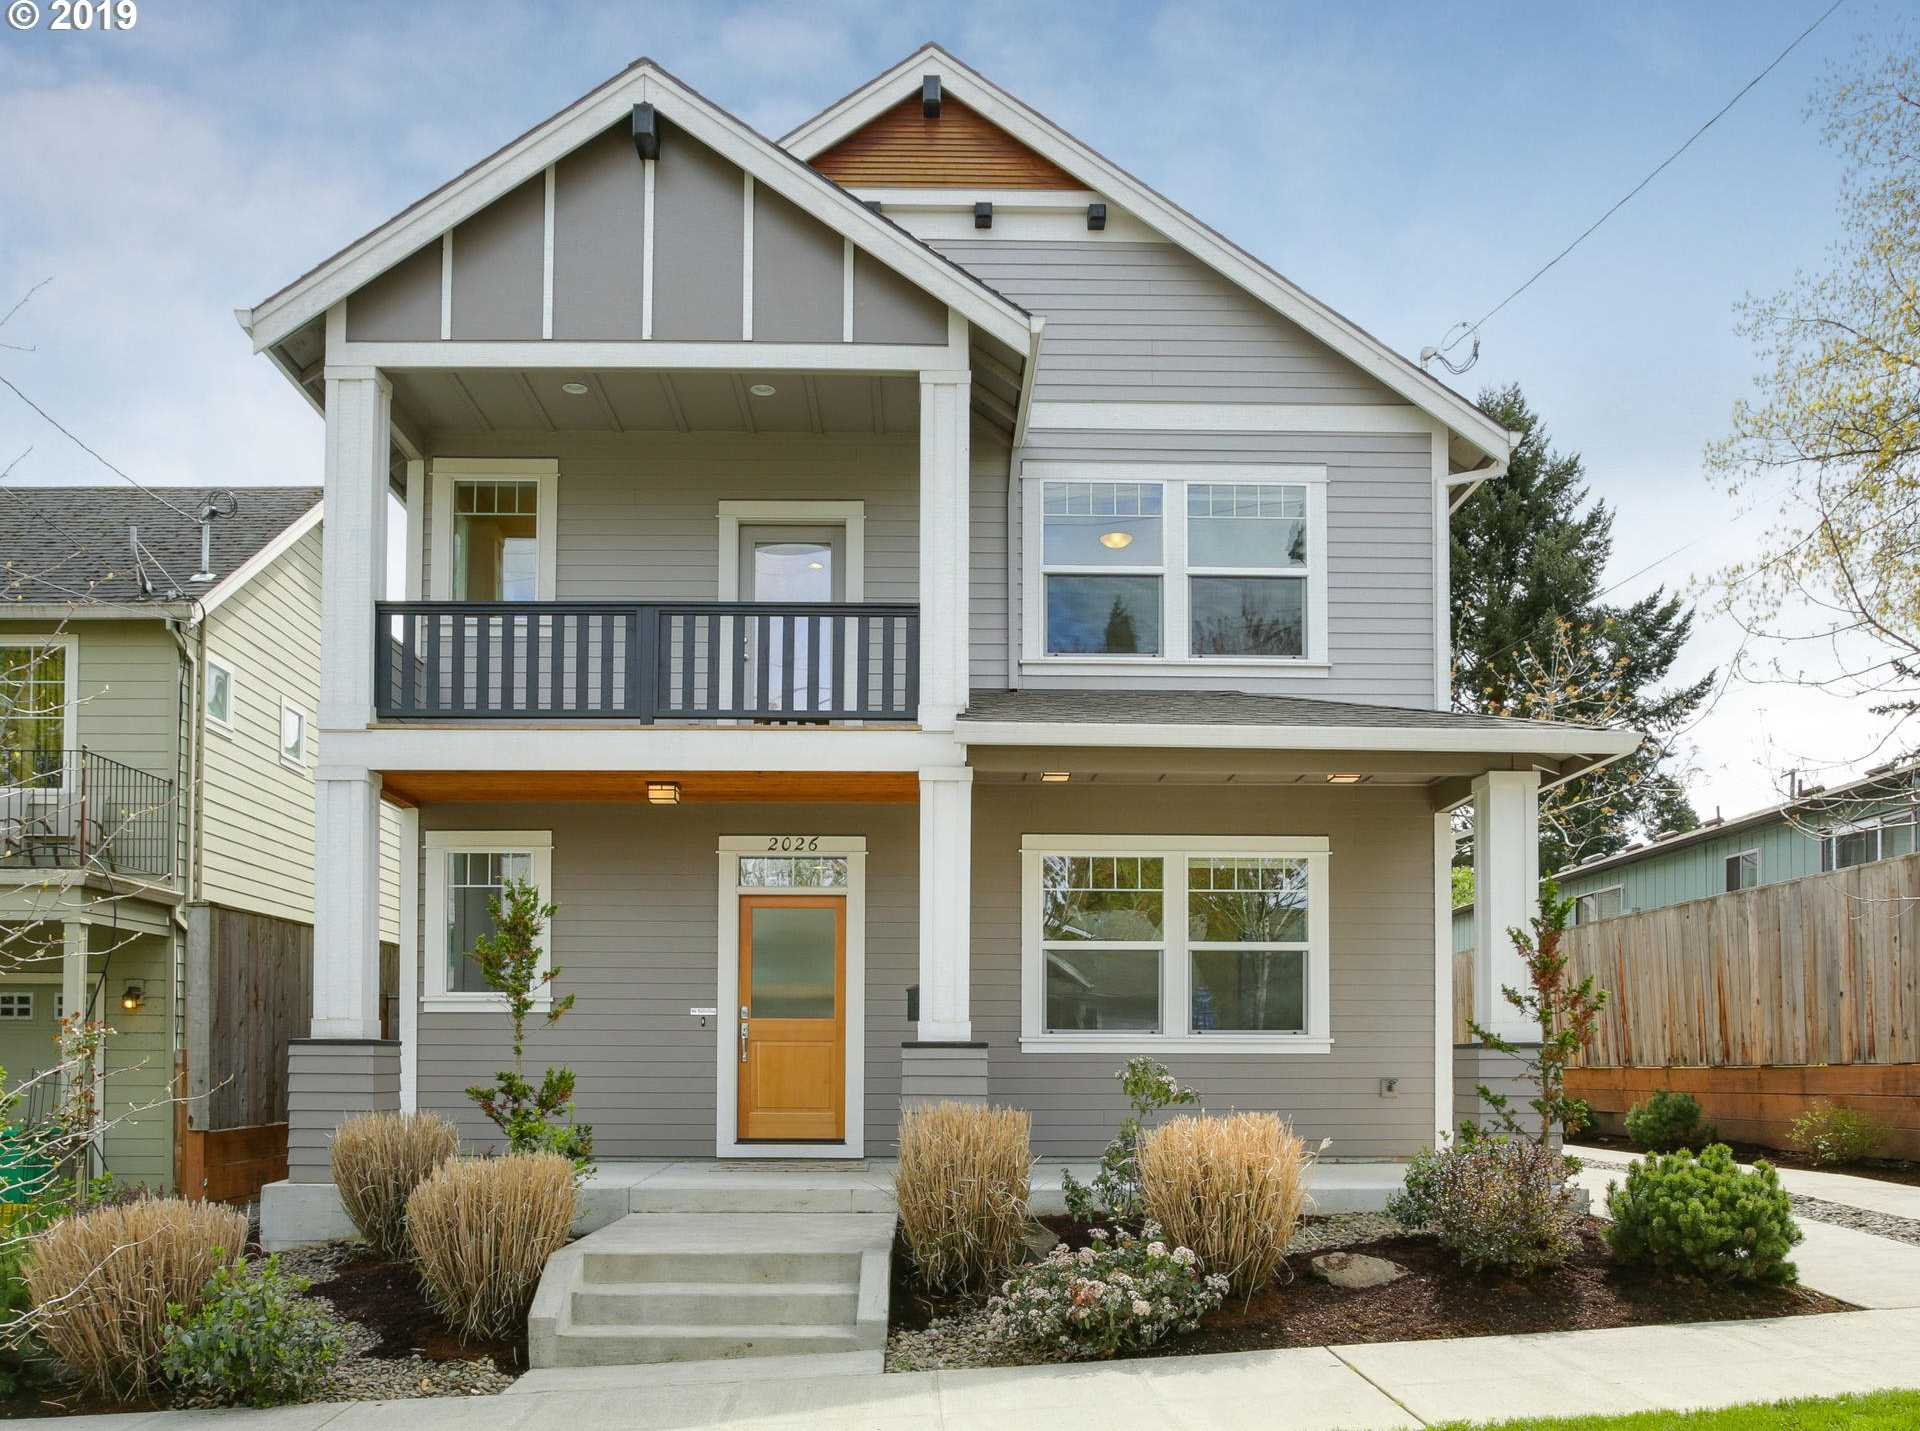 $875,000 - 4Br/3Ba -  for Sale in Sellwood, Portland